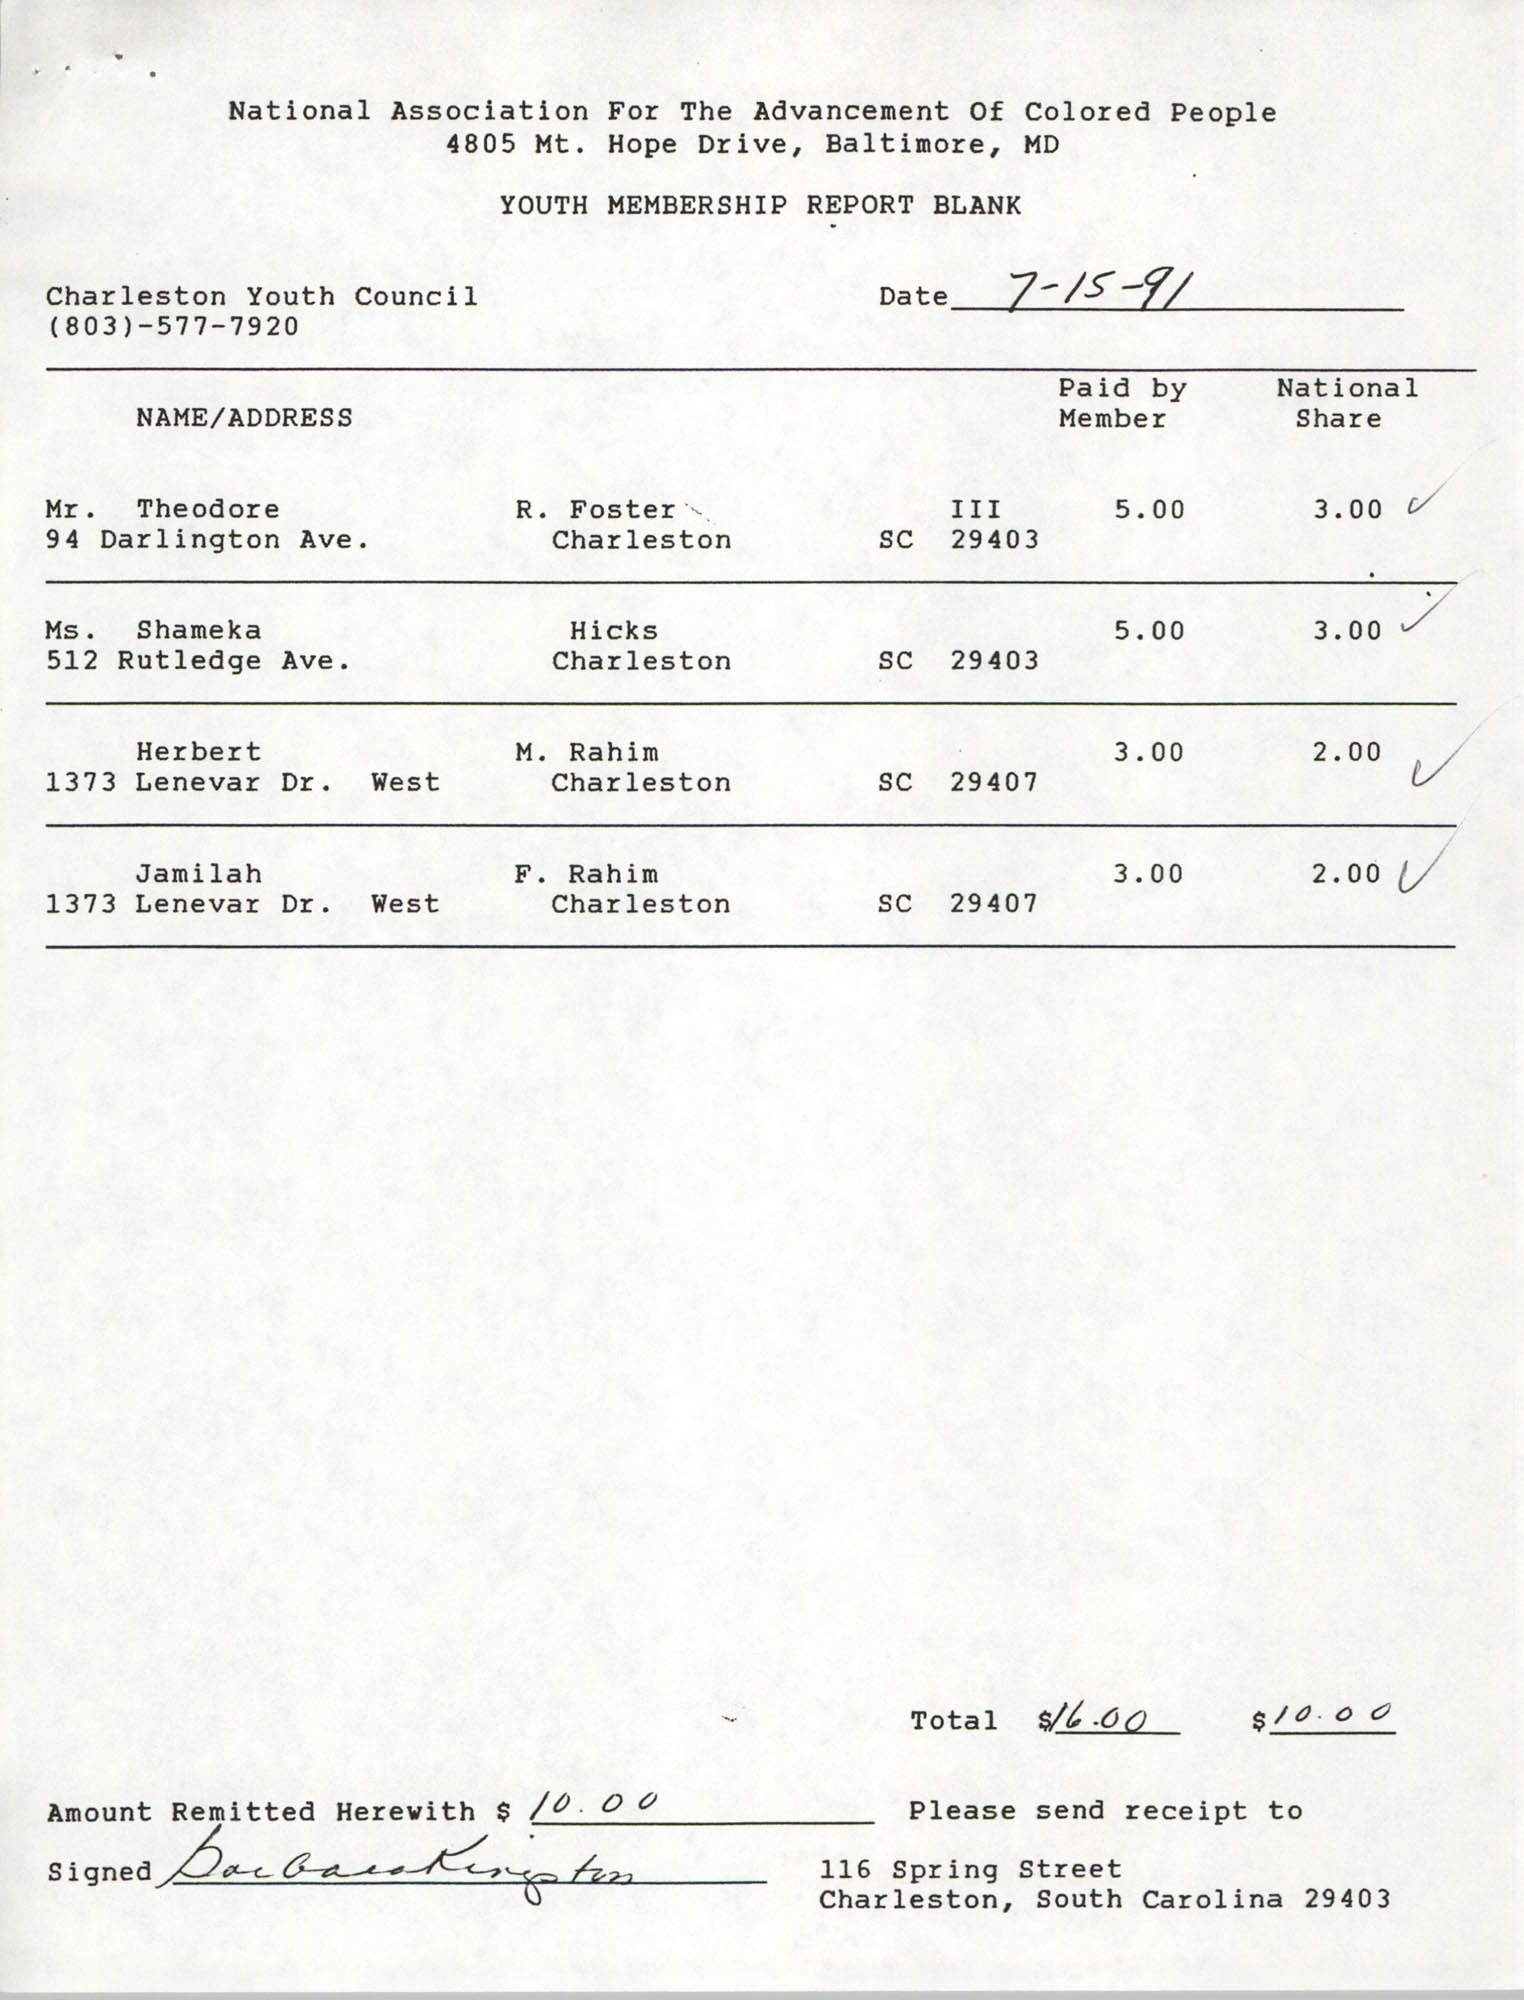 Youth Membership Report Blank, Charleston Youth Council, NAACP, Barbara Kingston, July 15, 1991